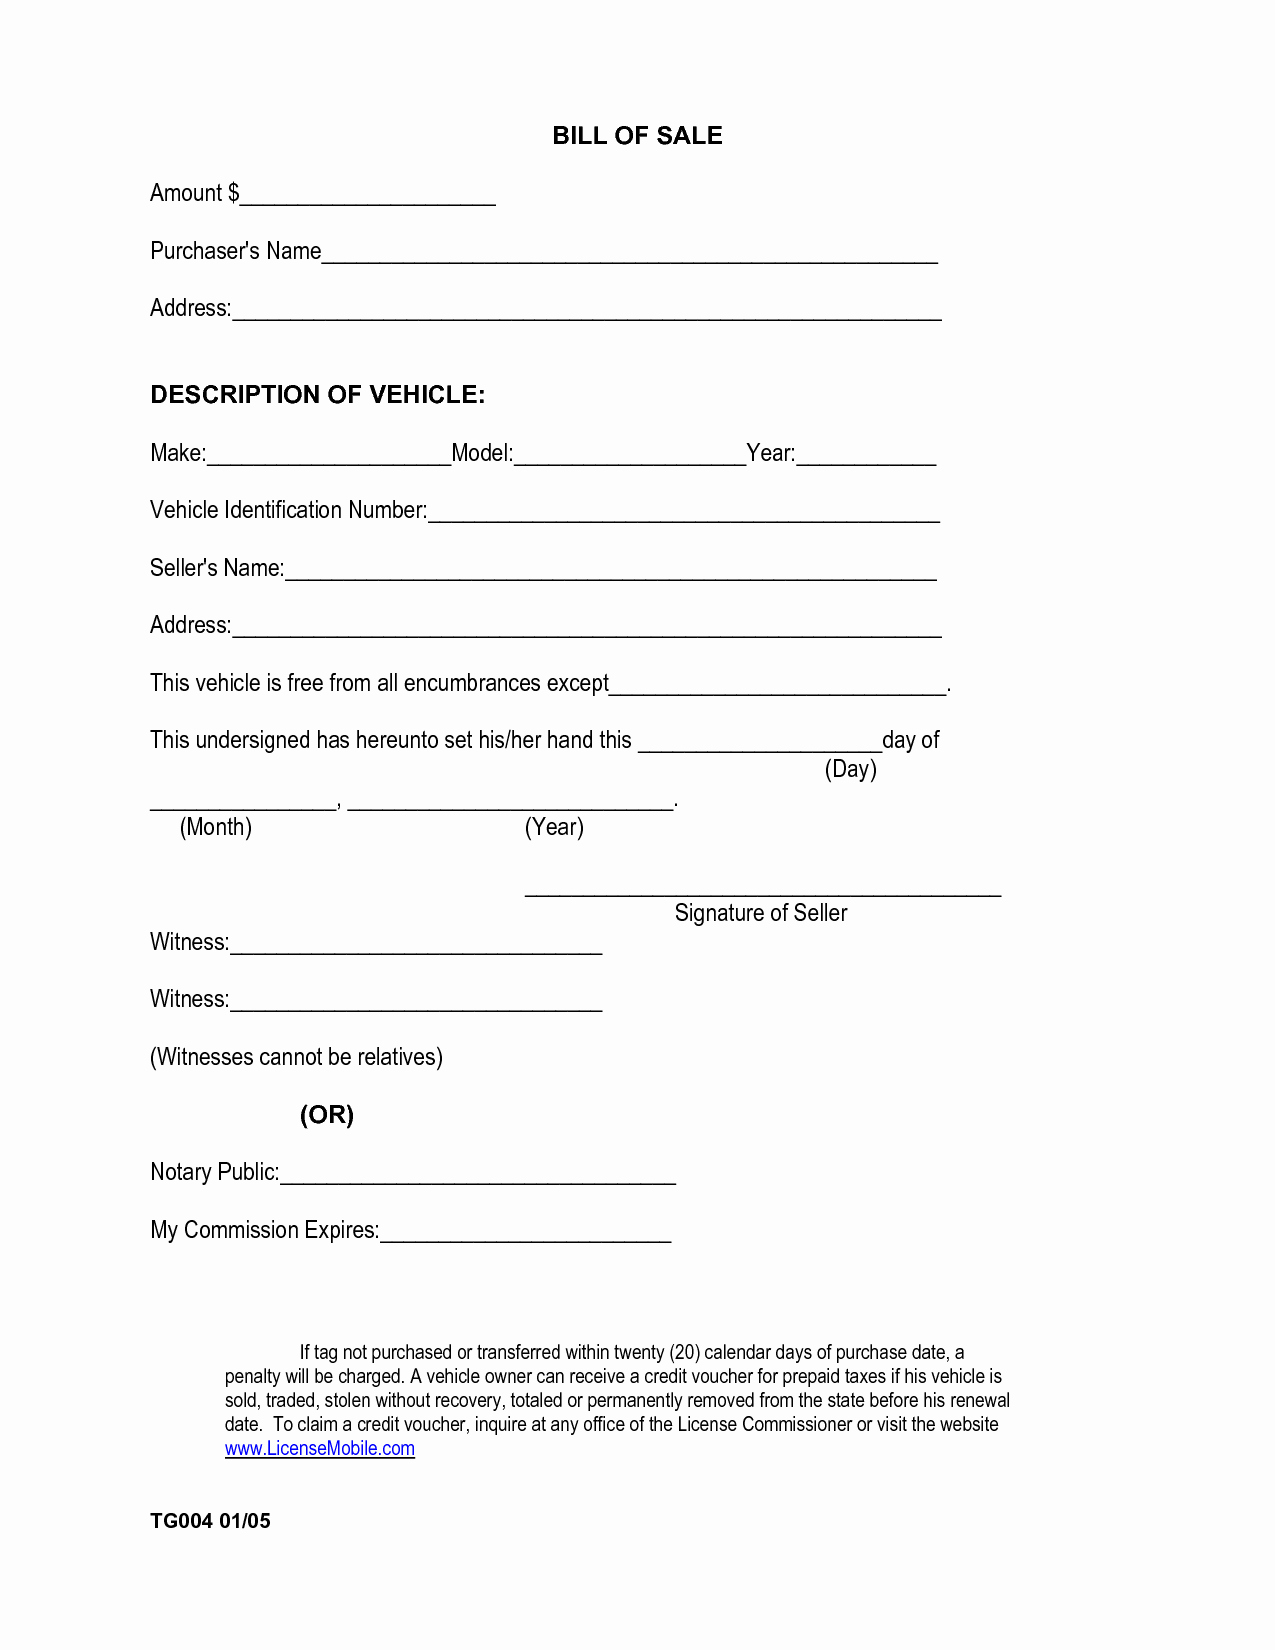 Bill Of Sales for Cars Luxury Free Printable Car Bill Of Sale form Generic